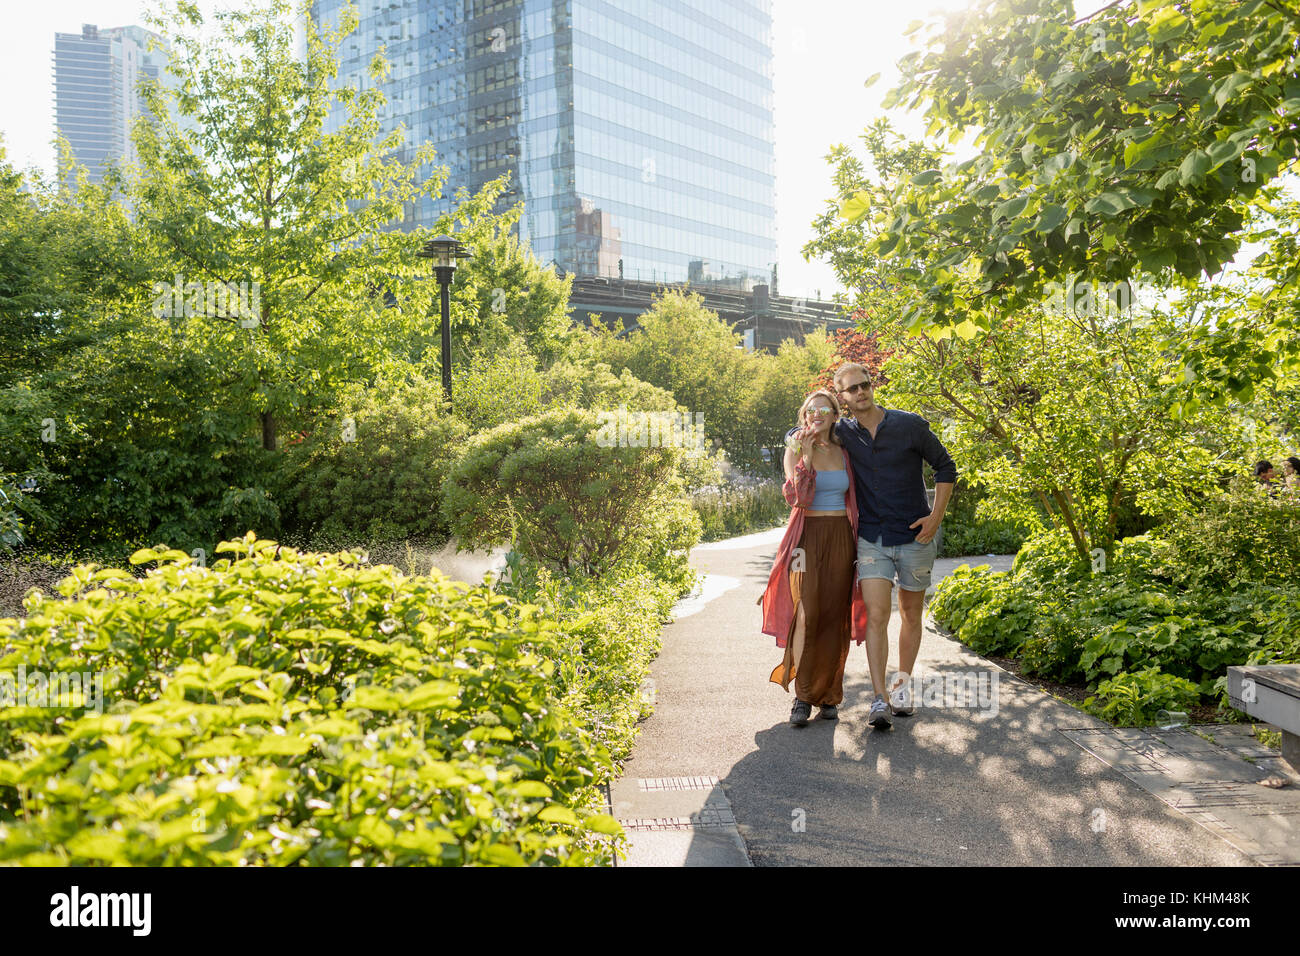 Couple walking together in a park - Stock Image